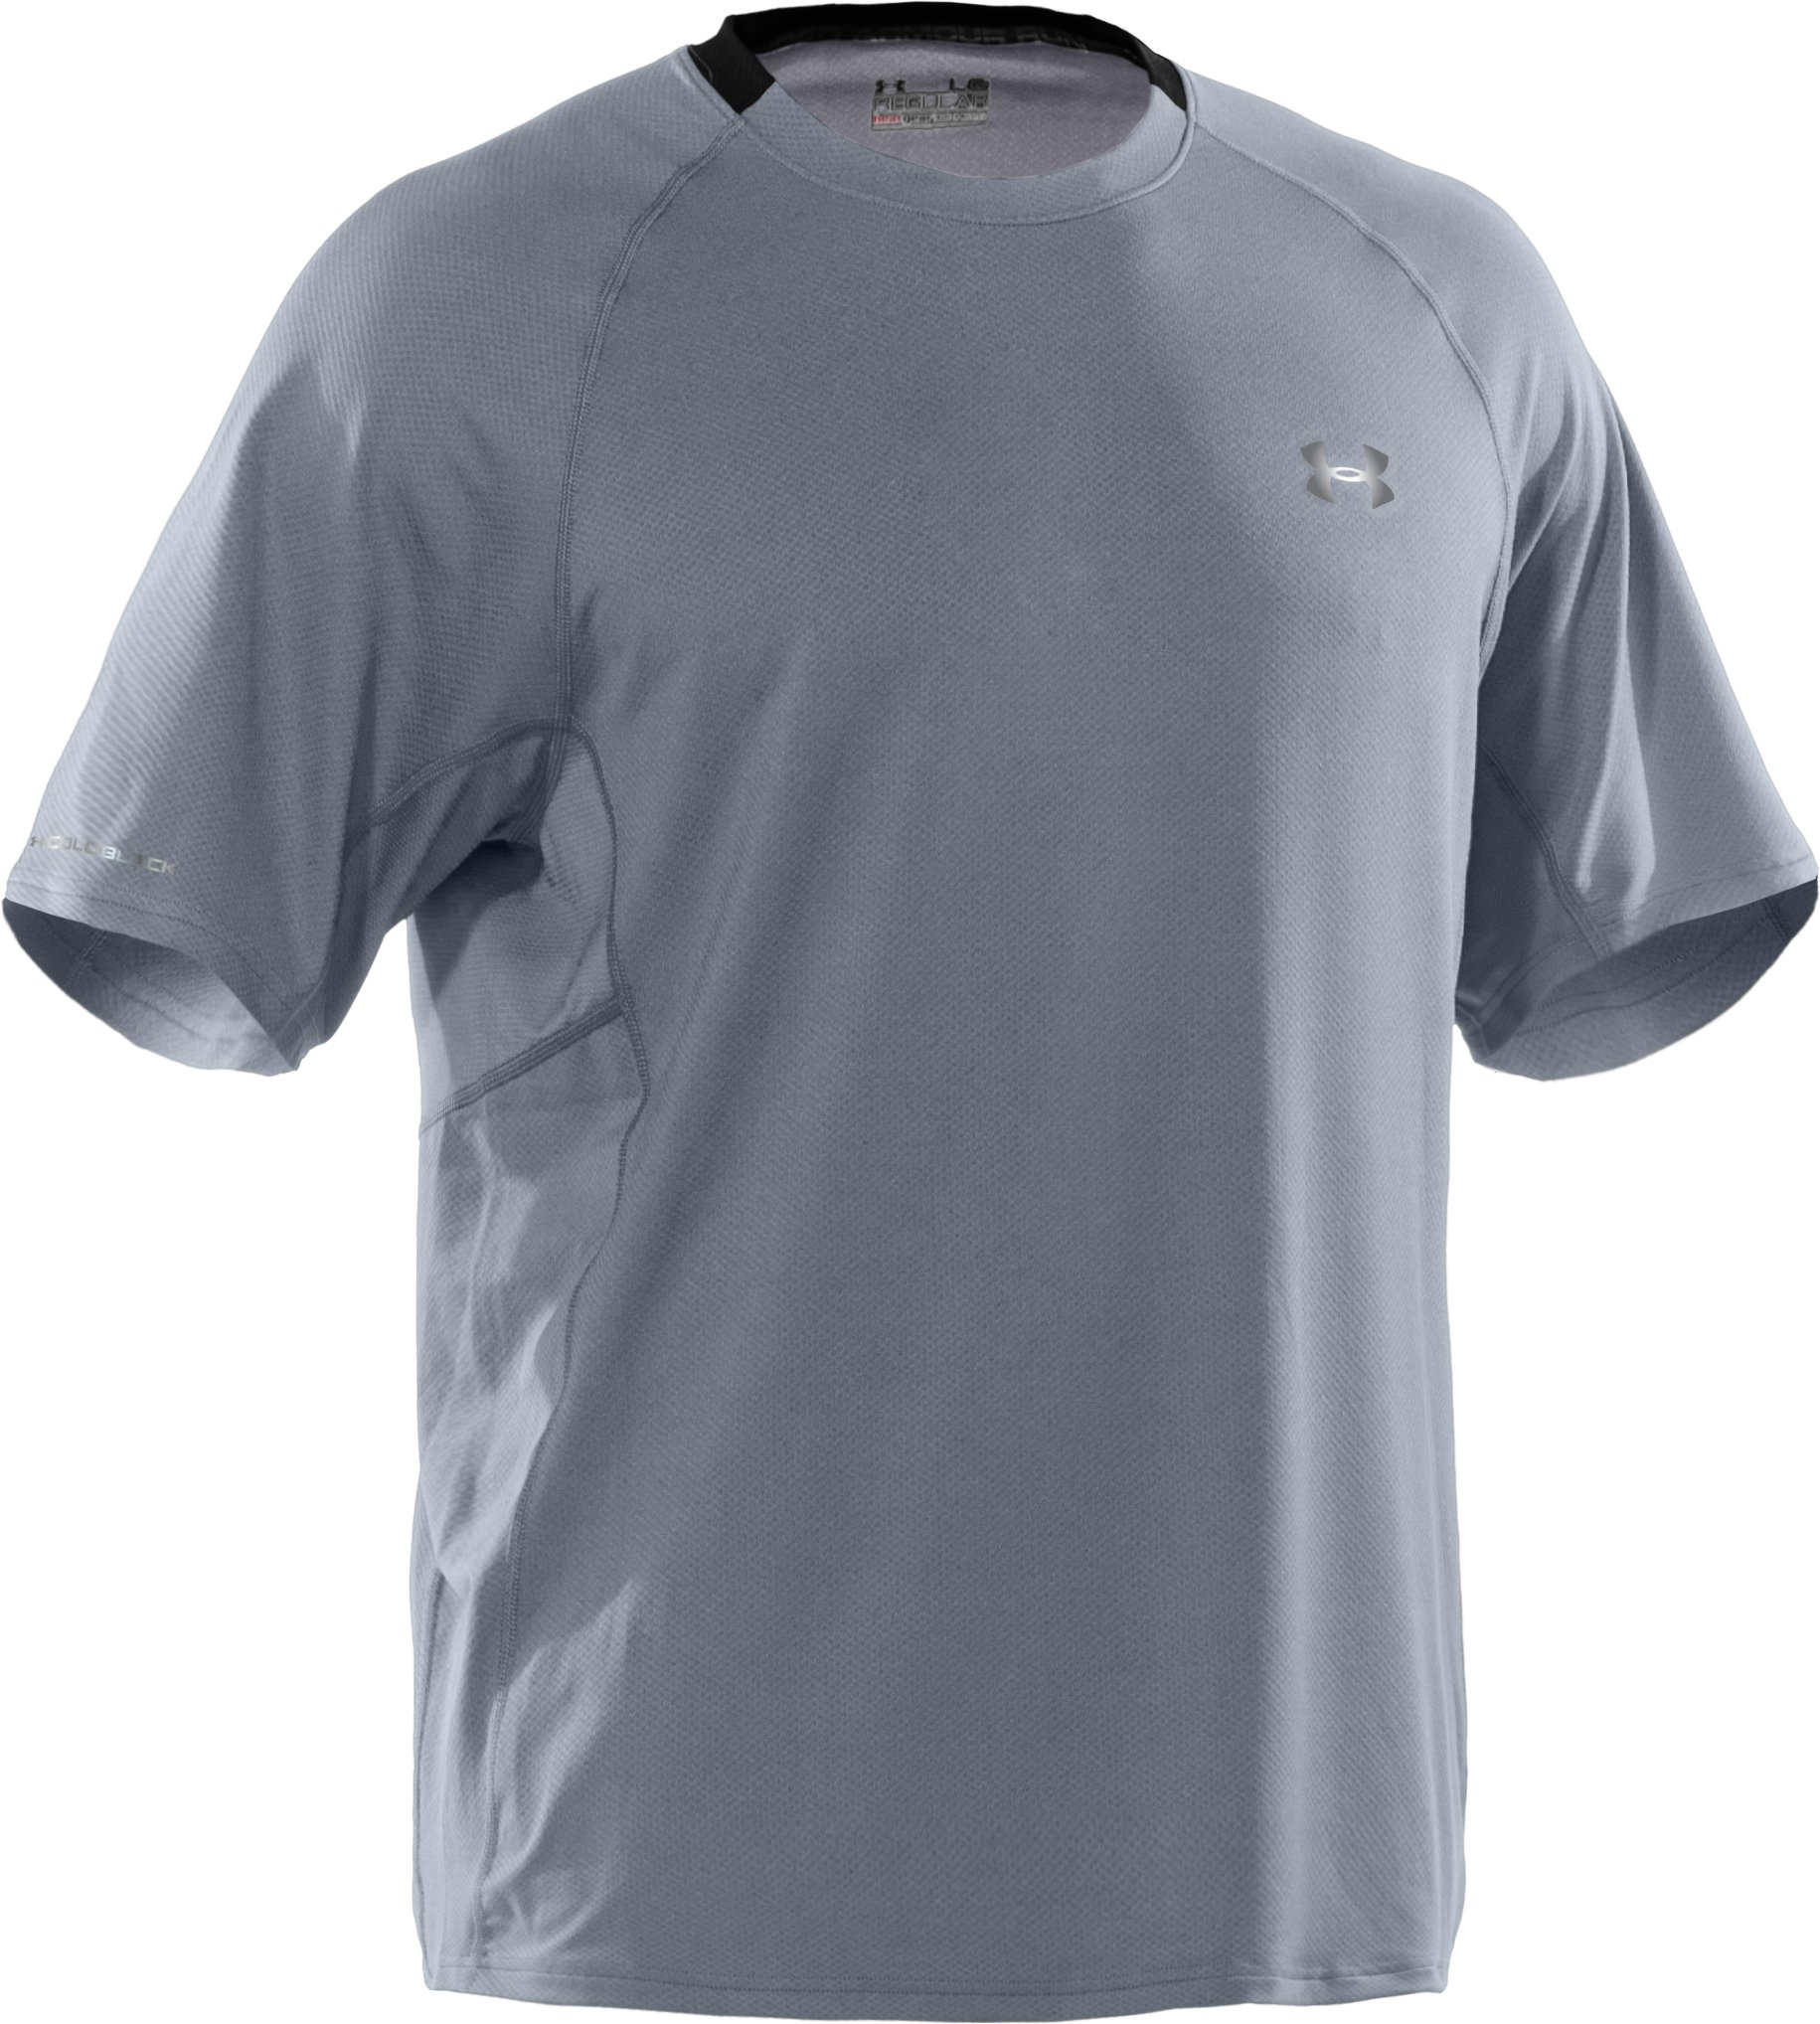 Men's coldblack® UA Run Short Sleeve T-Shirt, Steel